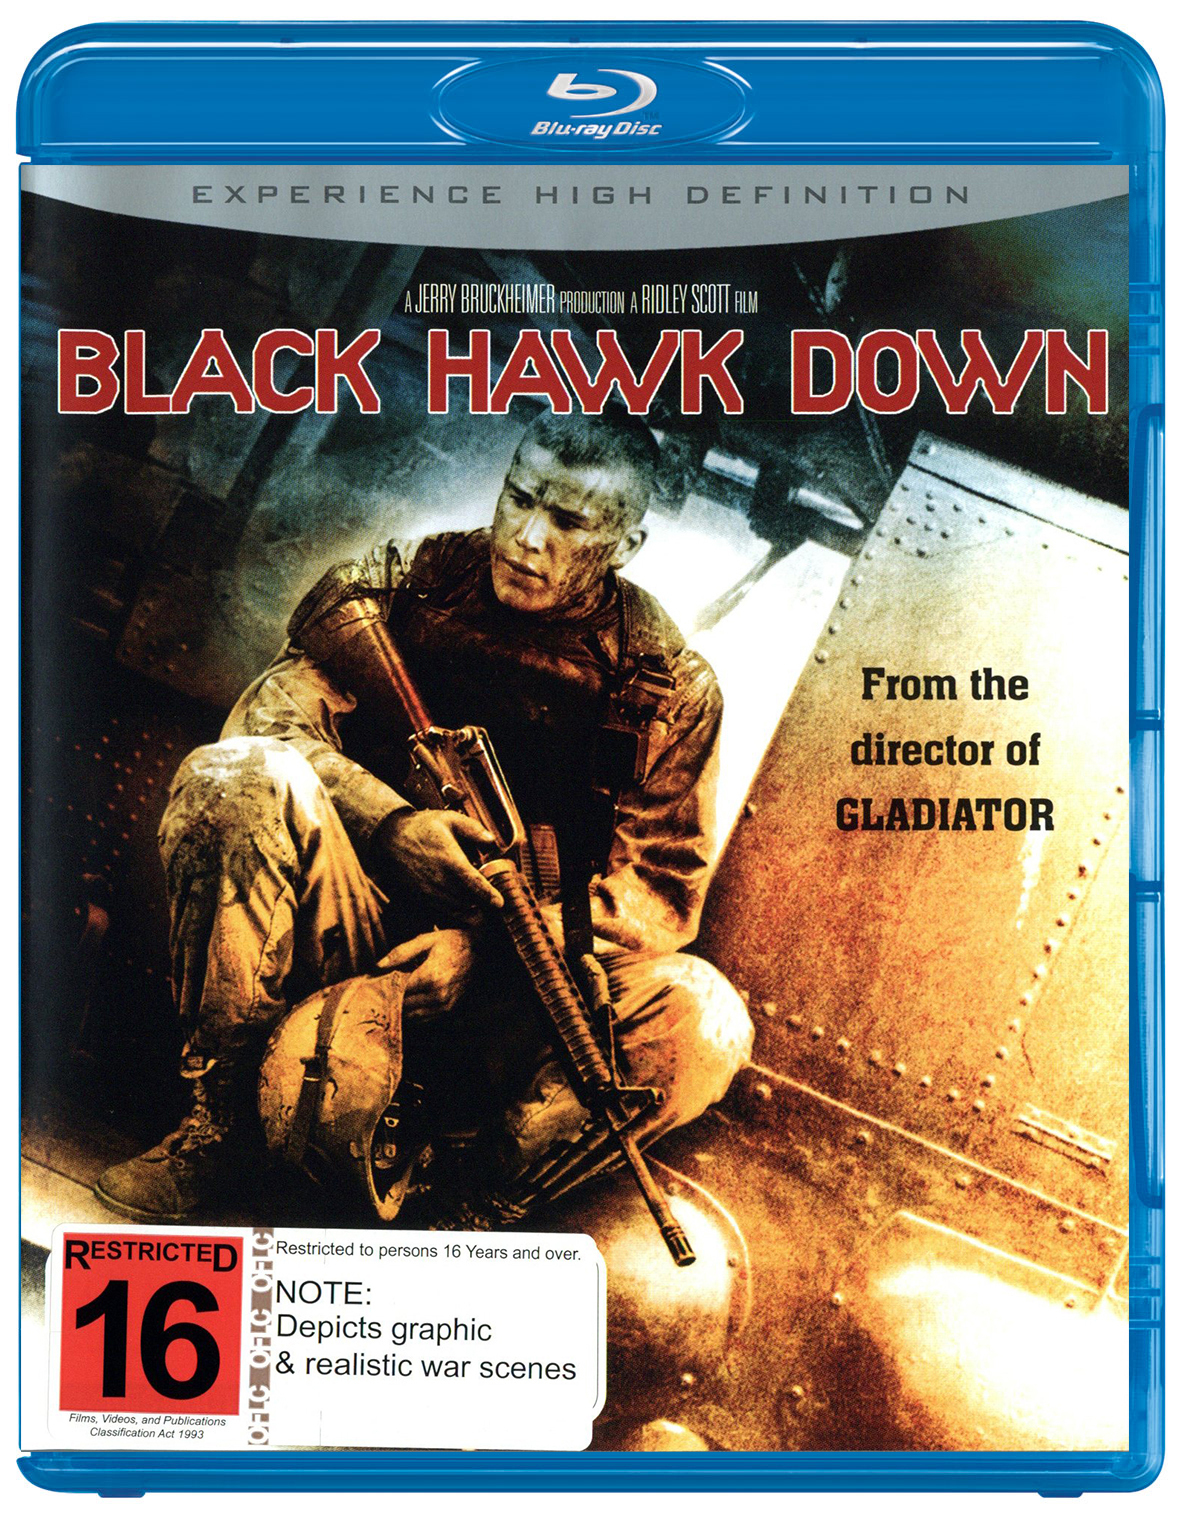 Black Hawk Down on Blu-ray image